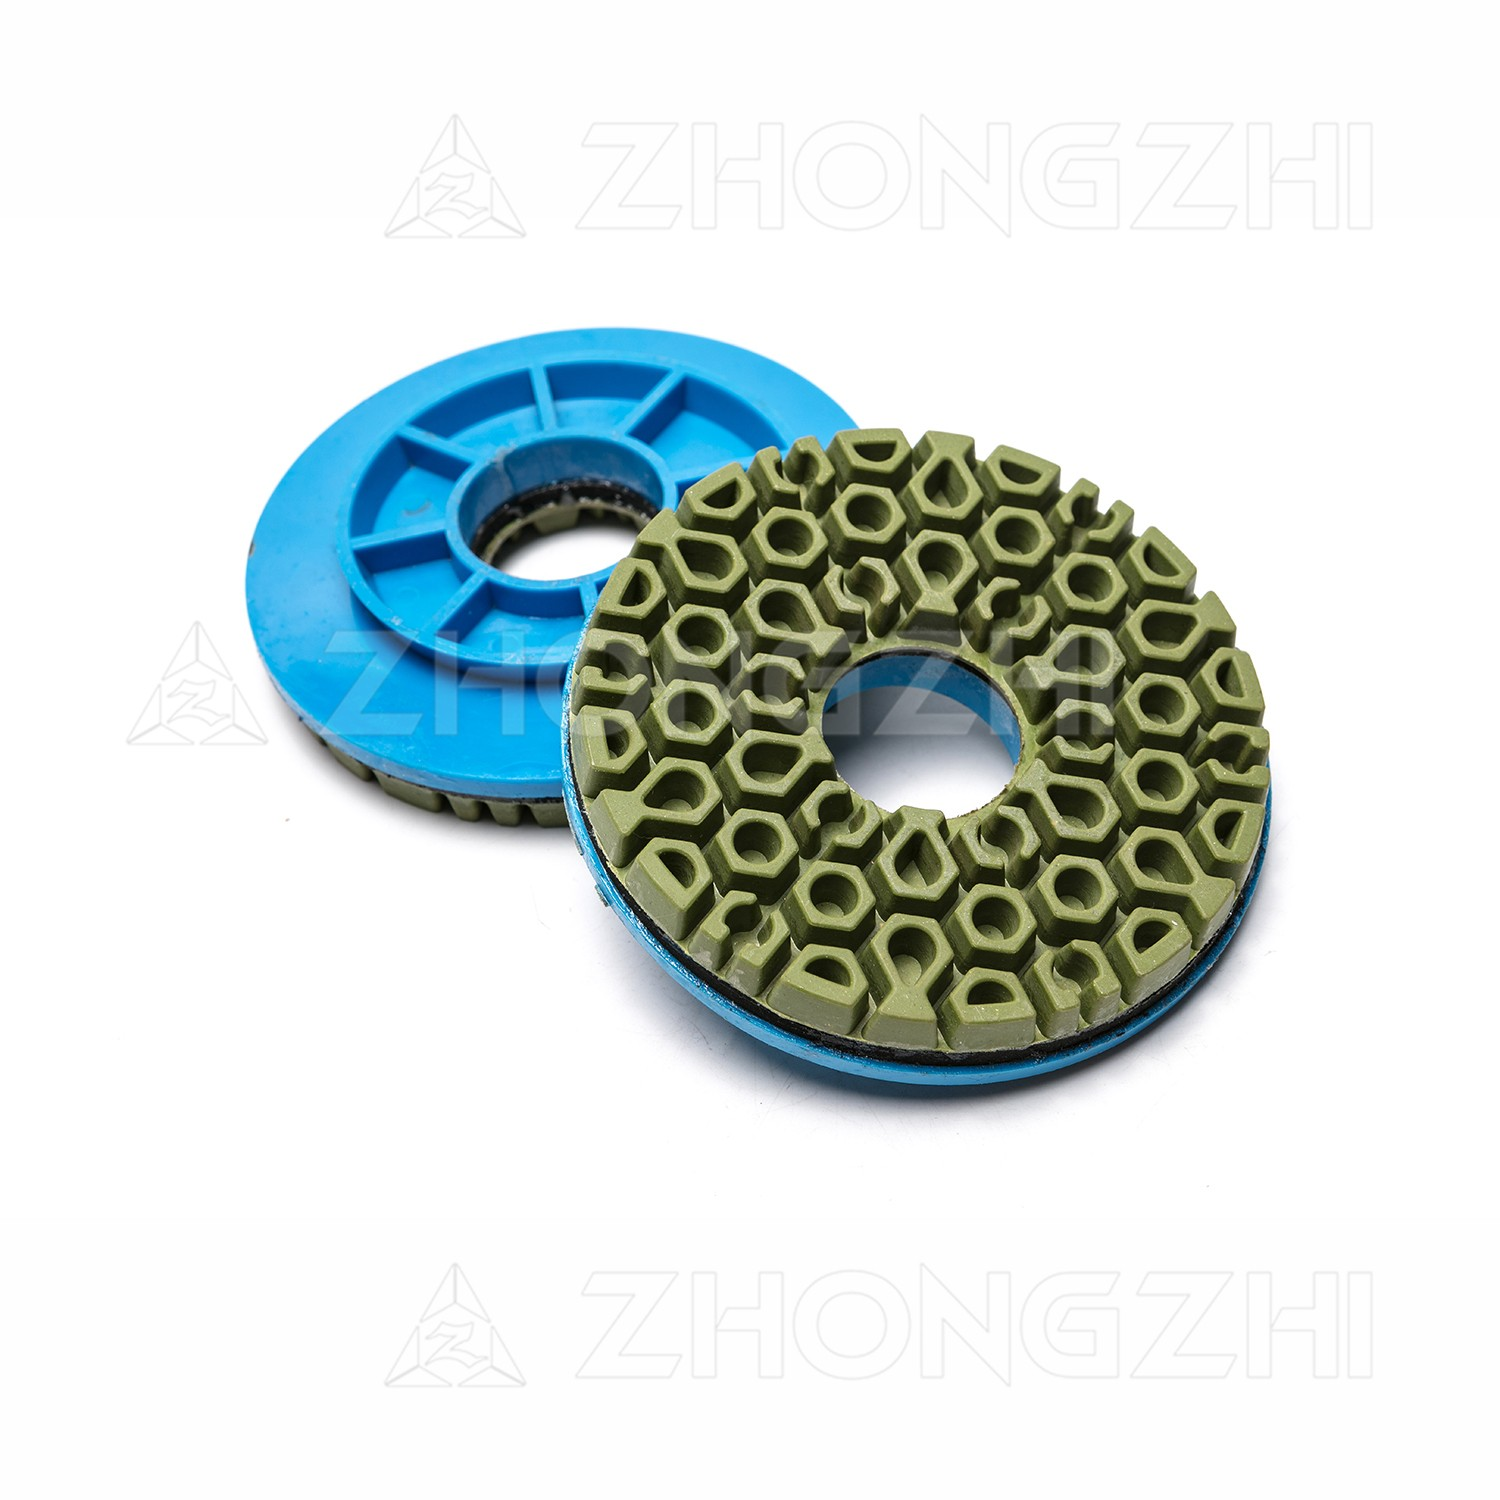 Good sharpness and universality Cellular Polishing Pad for Stone Manufacturers, Good sharpness and universality Cellular Polishing Pad for Stone Factory, Supply Good sharpness and universality Cellular Polishing Pad for Stone